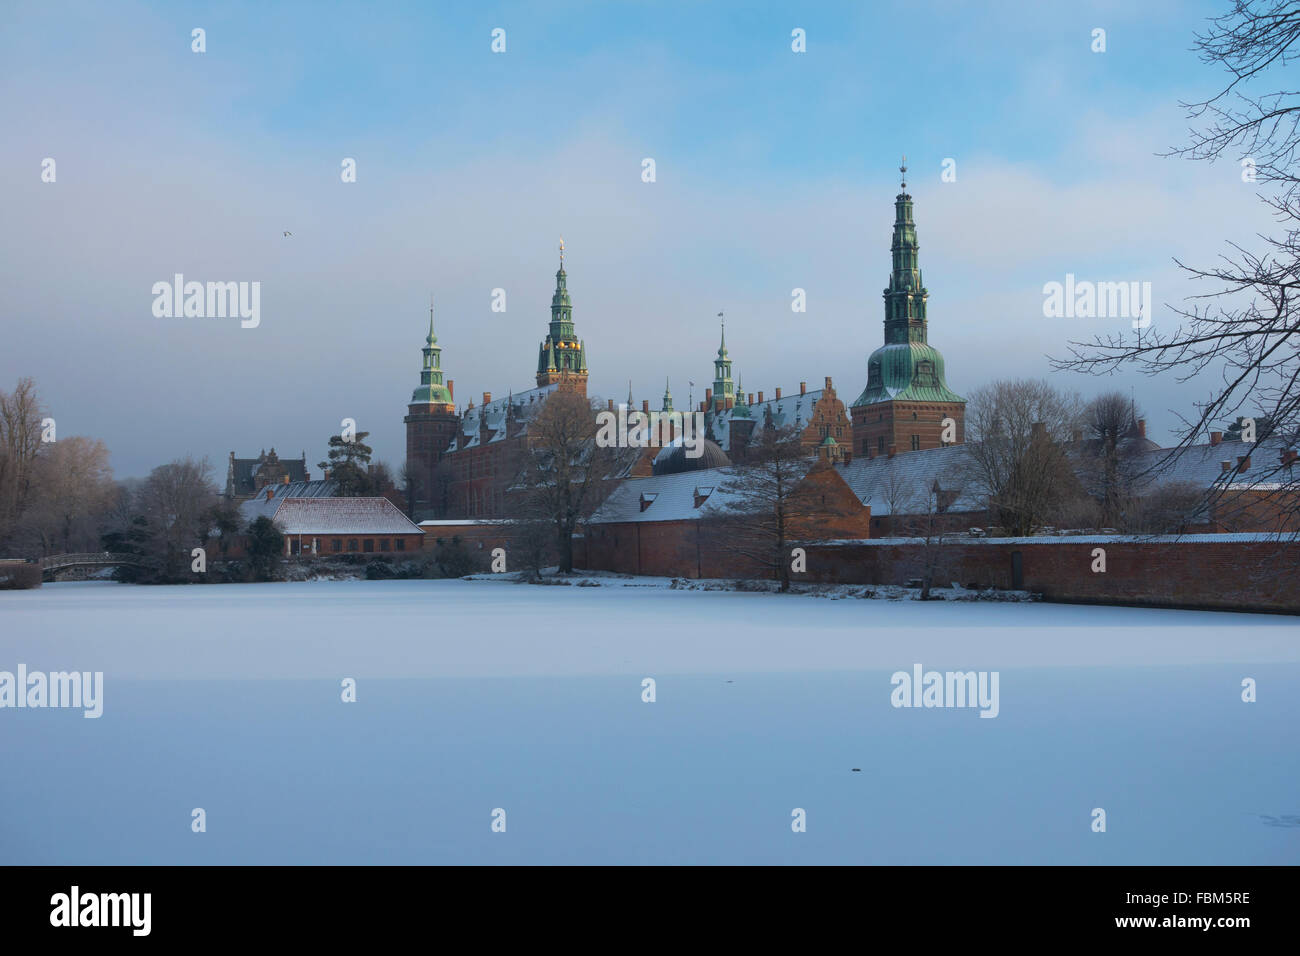 Frederiksborg Castle on a winter's day. Snow on frozen castle lake. The sun is breaking through the frosty mist. - Stock Image